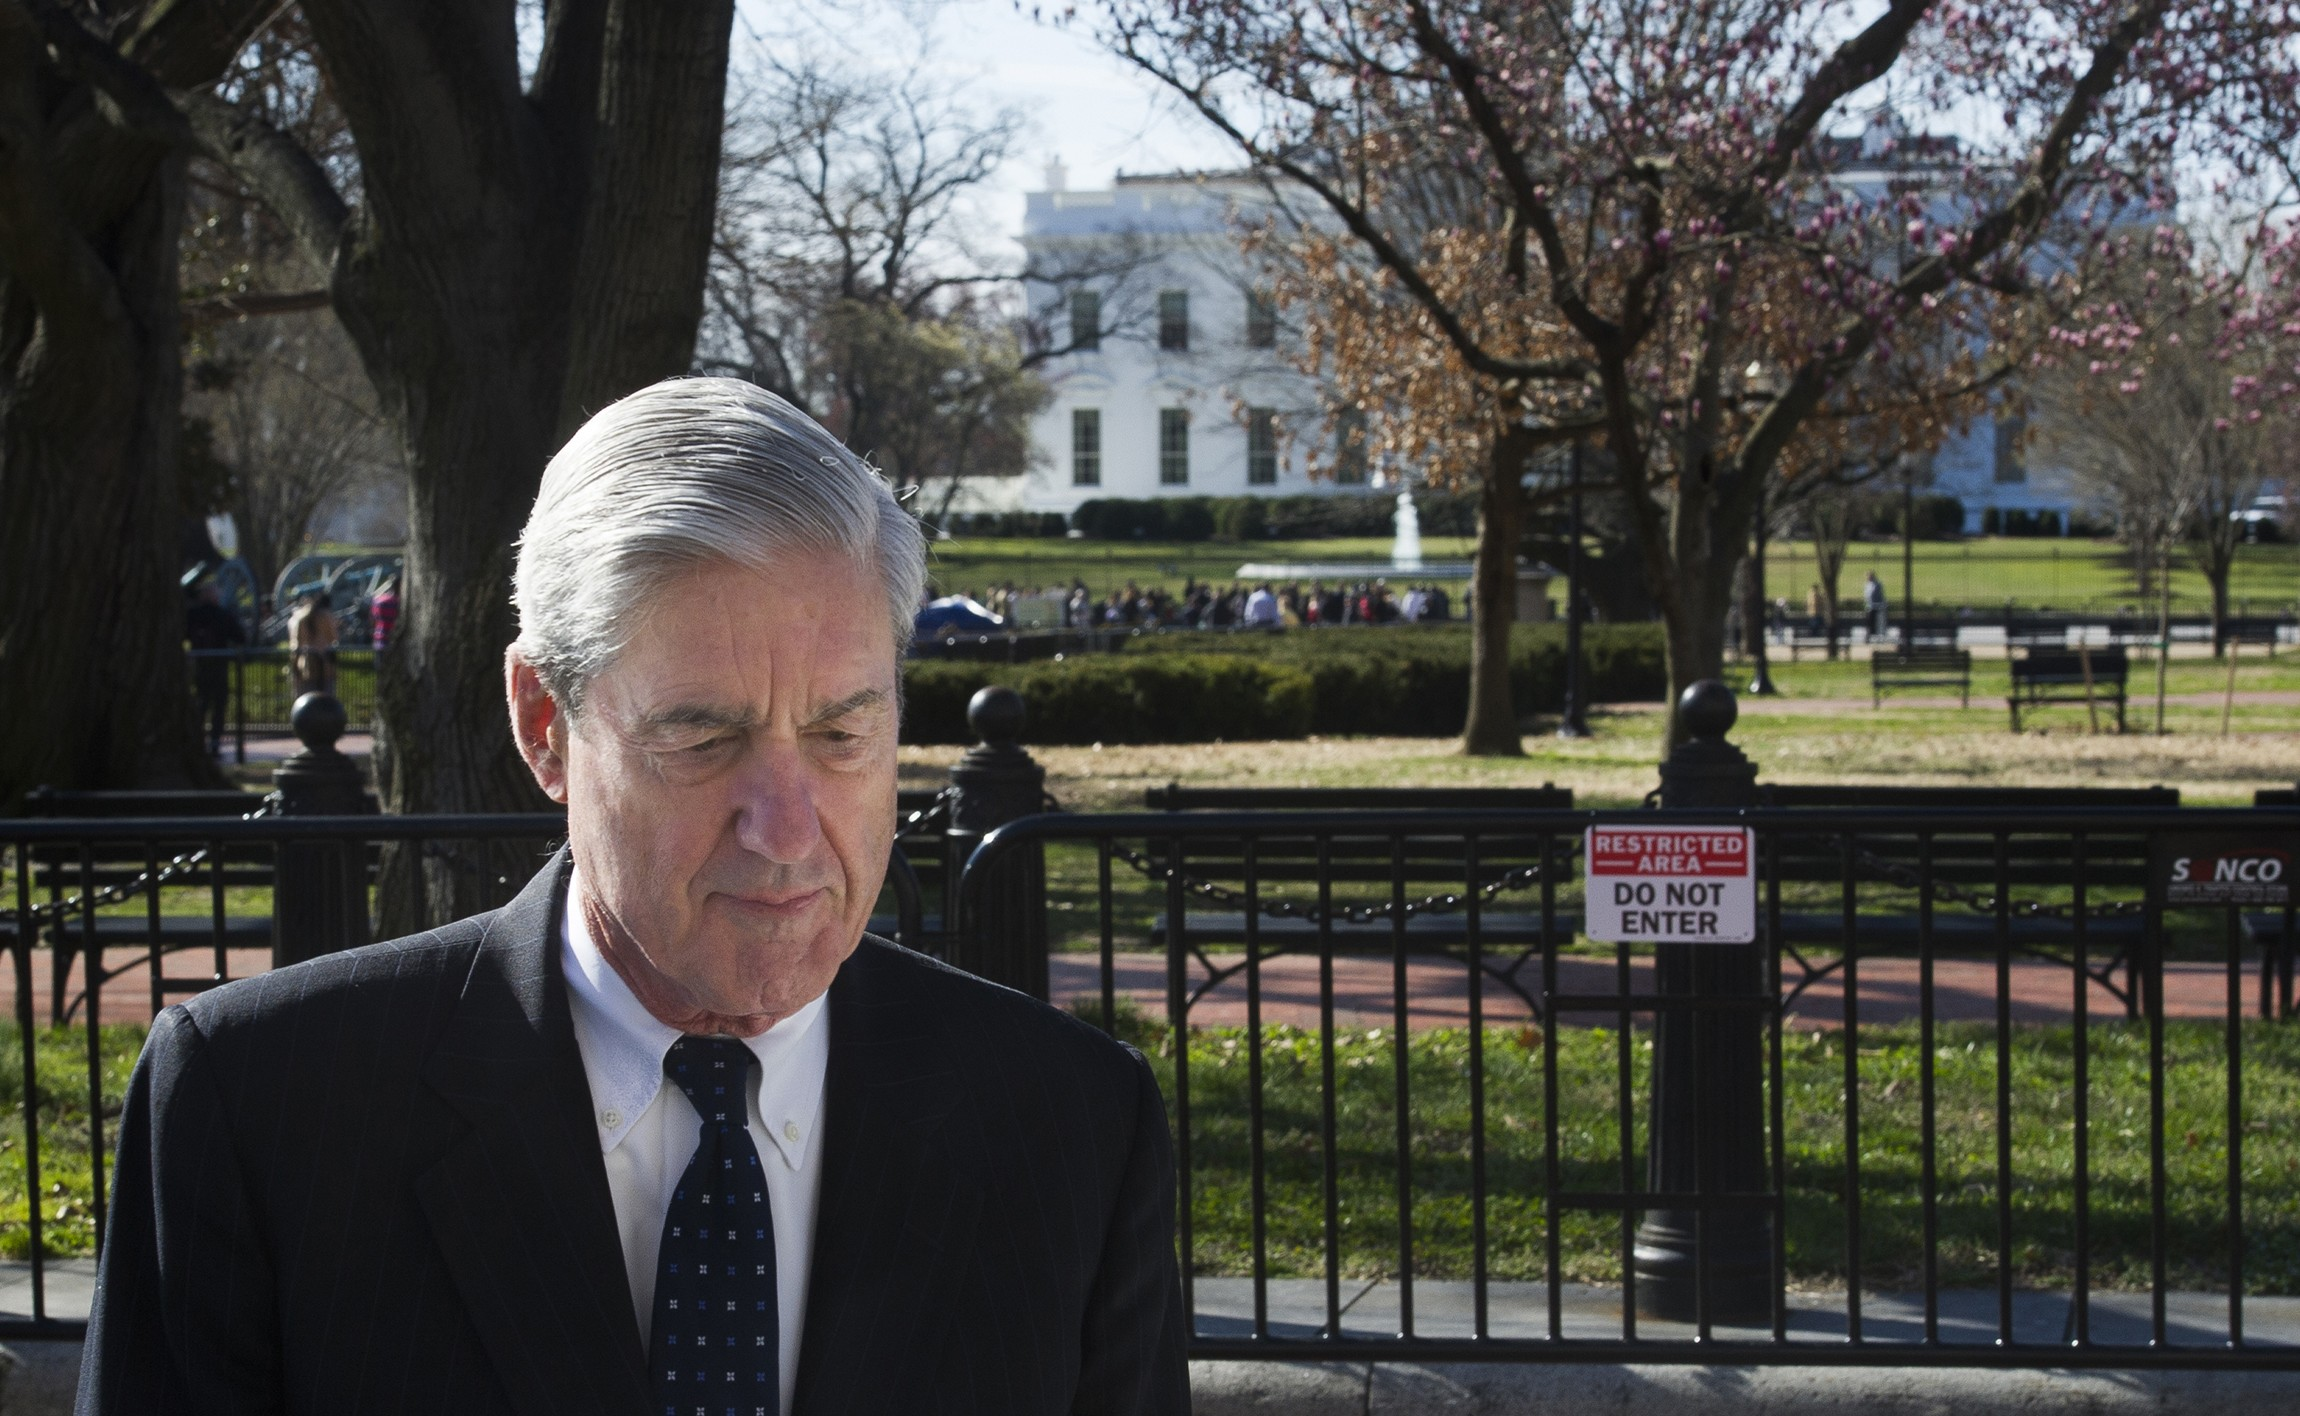 Special Counsel Robert Mueller after attending church in Washington, D.C. last Sunday ( Image )